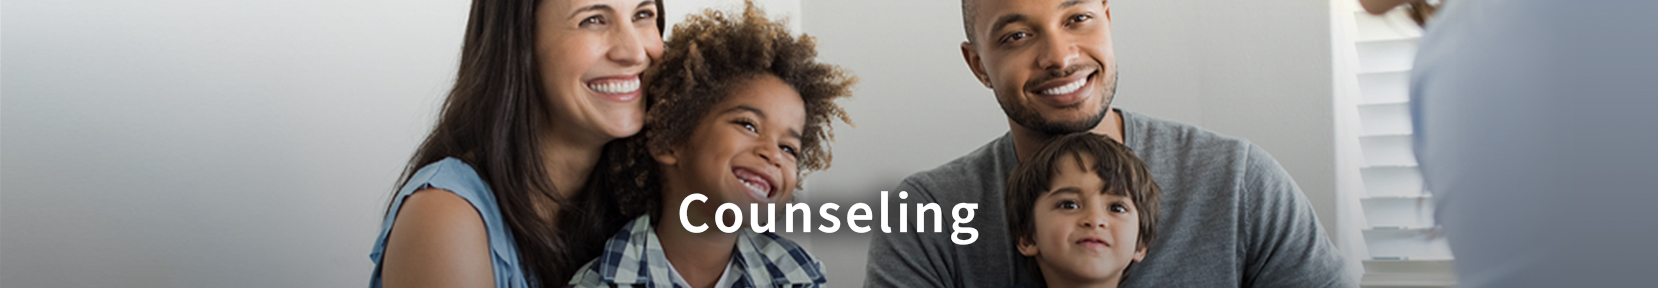 Counseling Group - Counseling Services Brightside Counseling - Buffalo, NY